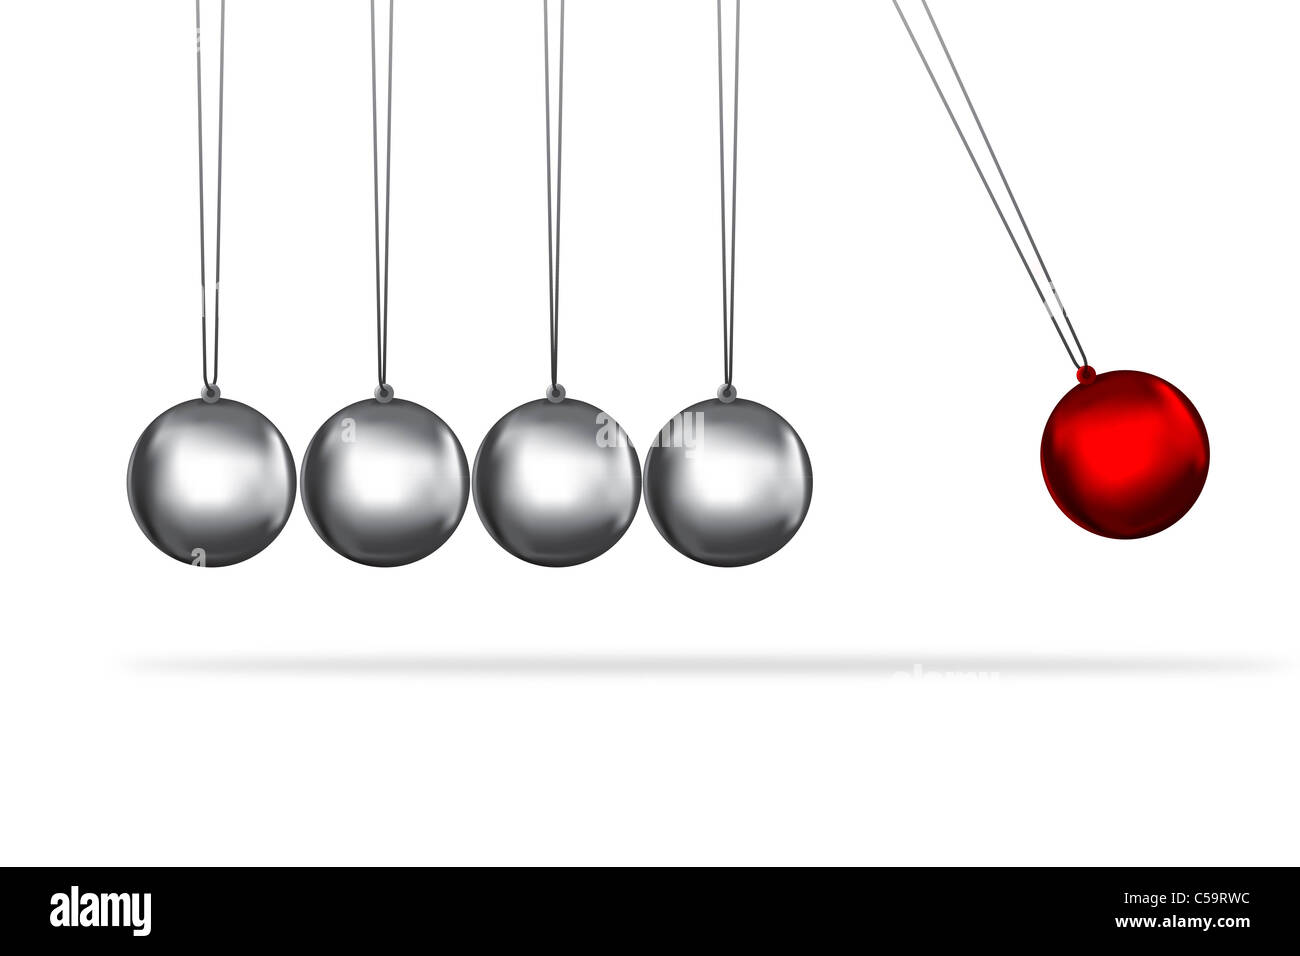 newtons cradle concept of teamwork and the individual represented by coloured balls - Stock Image